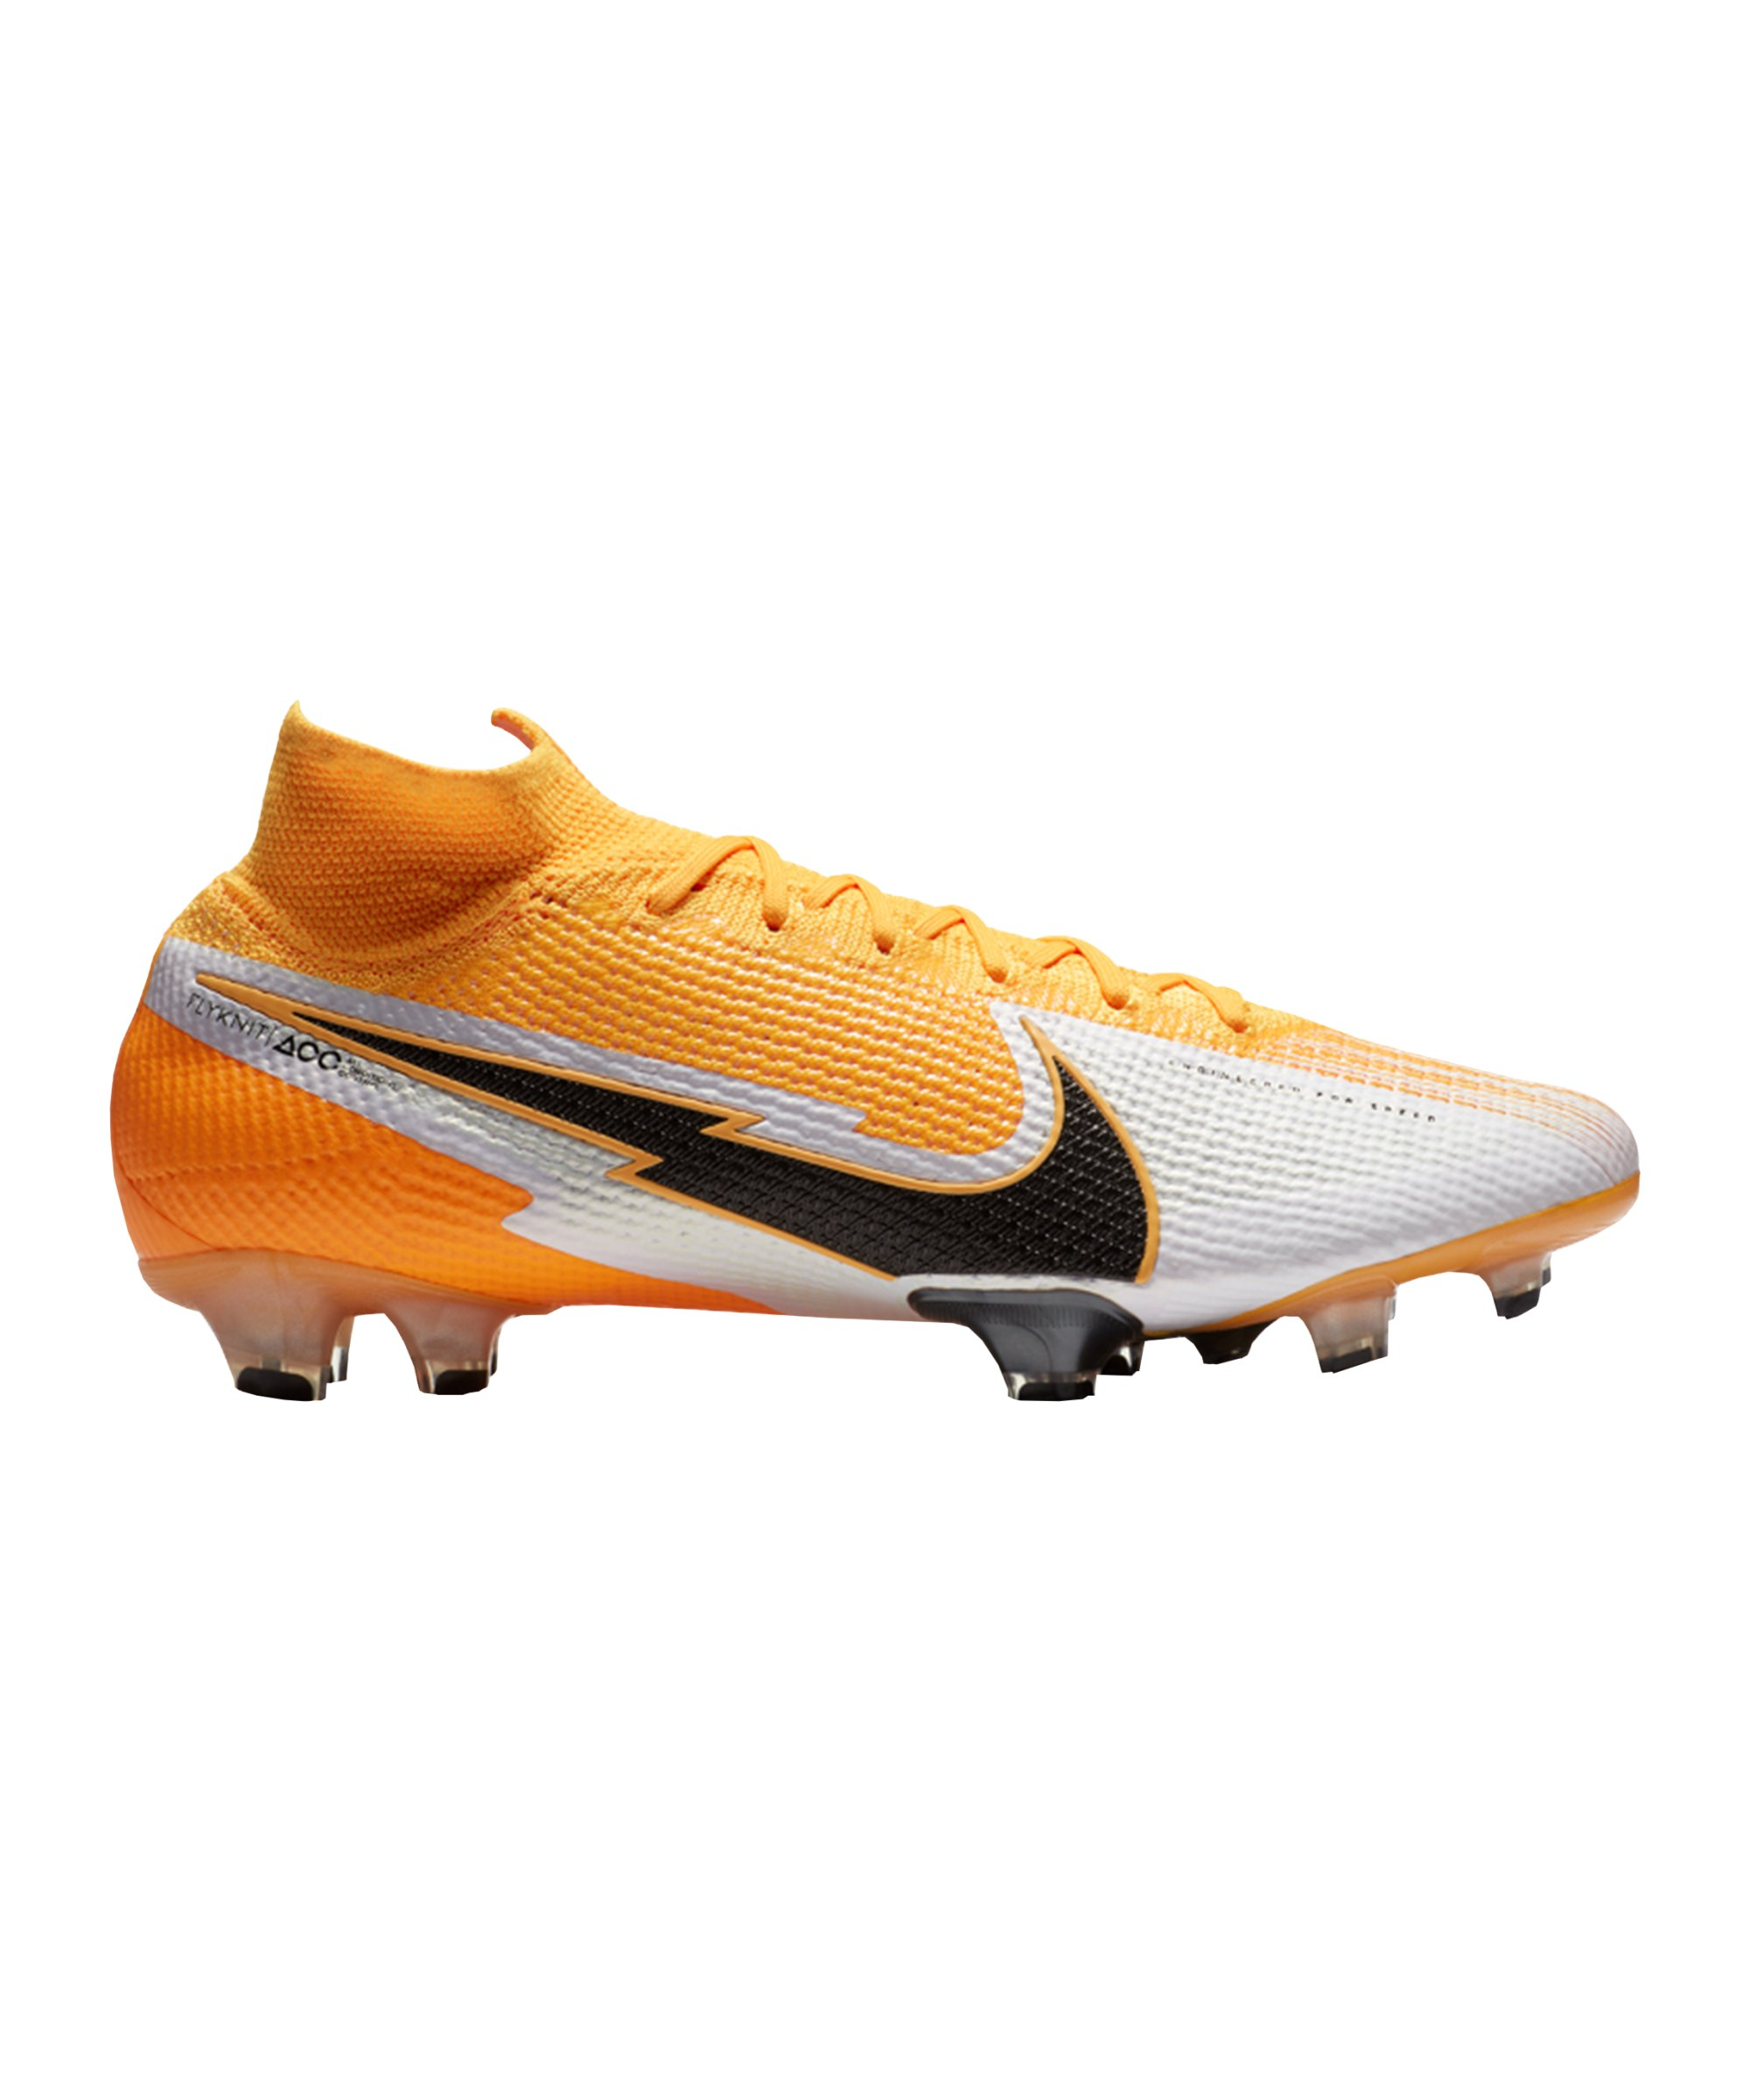 Nike Mercurial Superfly VII Daybreak Elite FG Orange F801 - orange